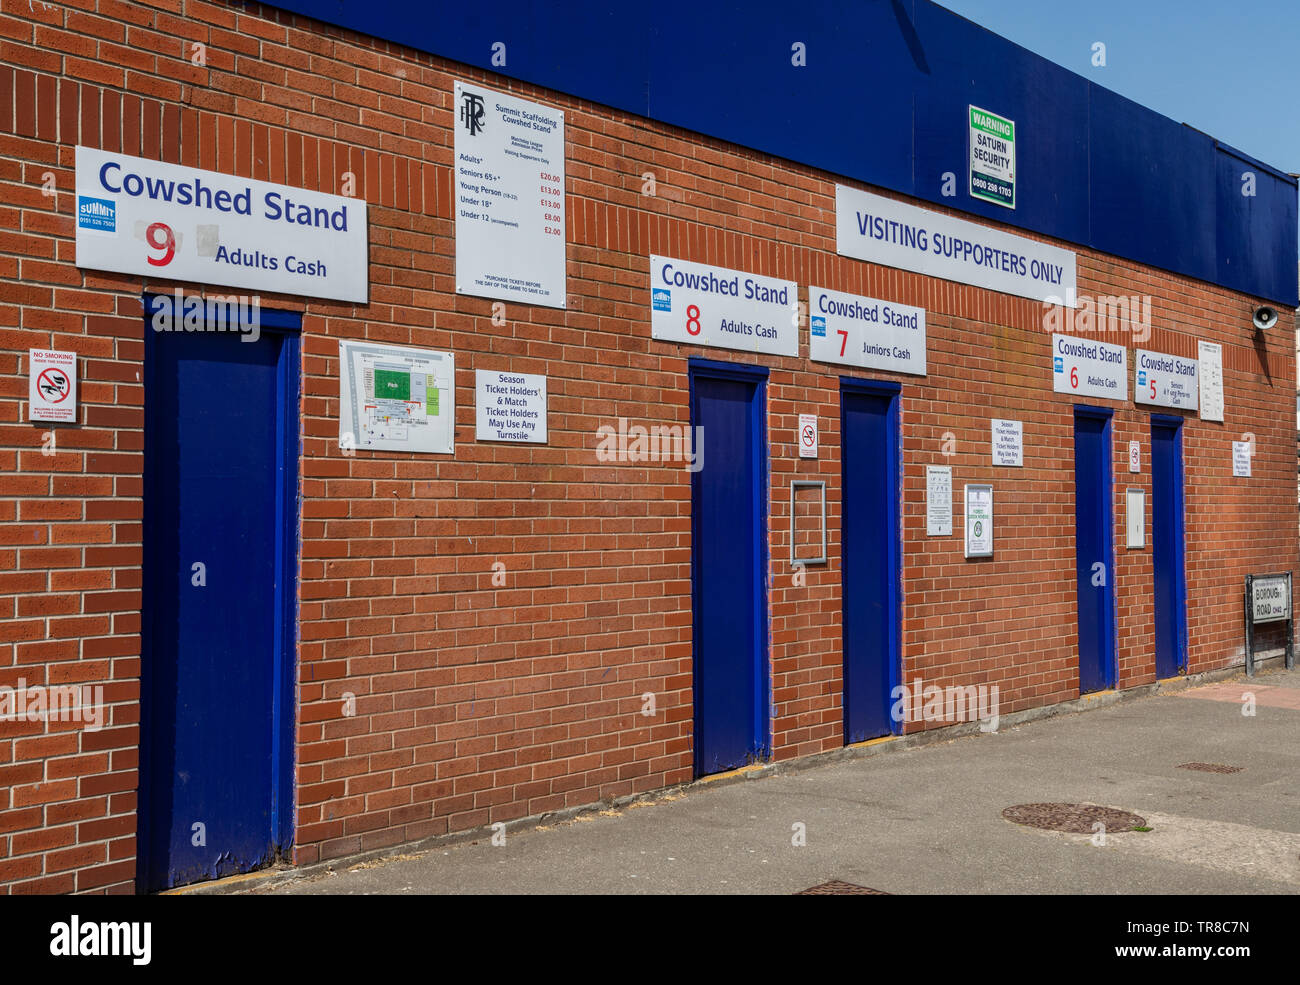 entrance for visiting away supporters for the Cowshed Stand at Tranmere Rovers Wirral April 2019 Stock Photo